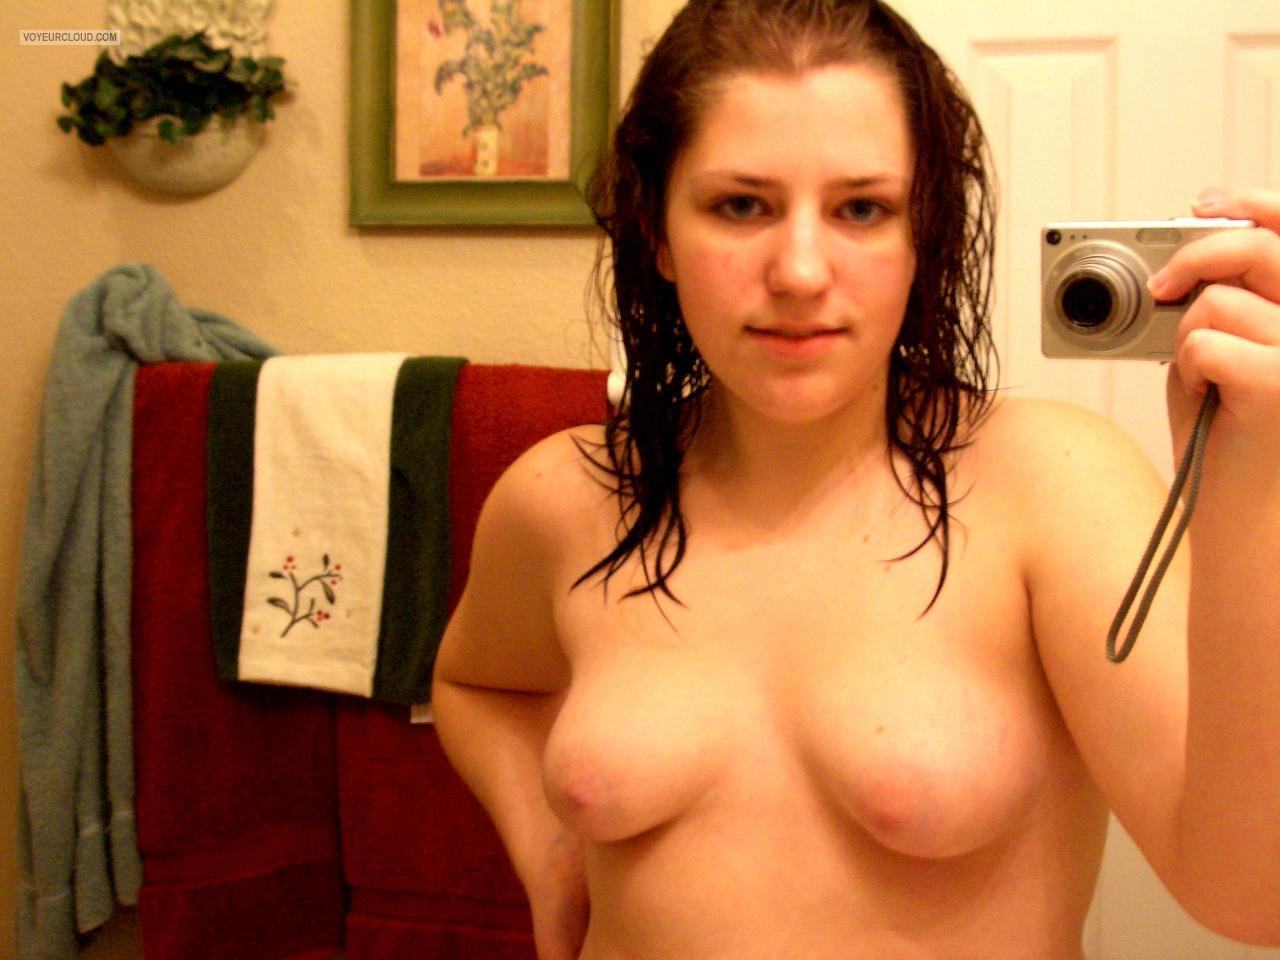 Tit Flash: My Small Tits (Selfie) - Topless Kimberly Owens from United States